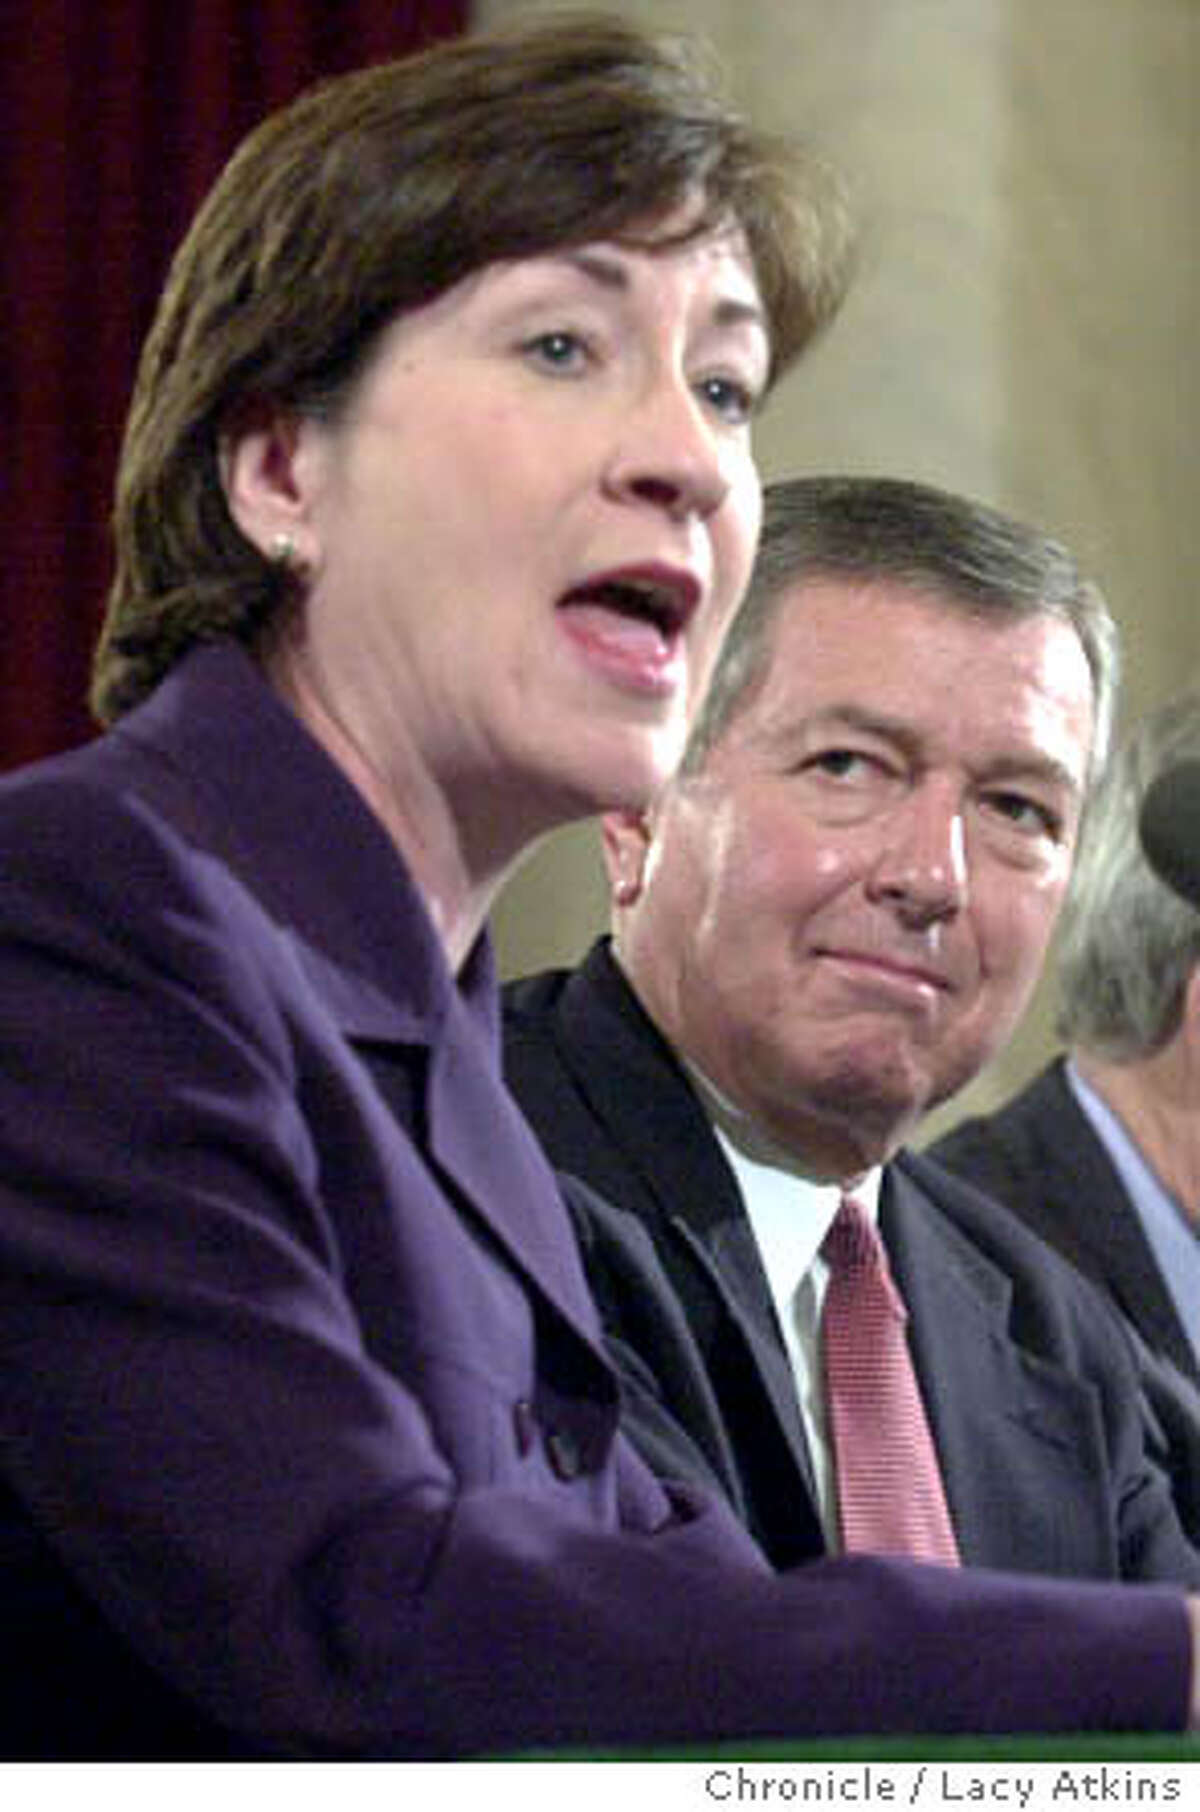 HEARING2-C-17JAN01-MN-LA - Senator Susan Collins, of Maine testifies for John Ashcroft, in the second day of the confirmation hearings for Attorney General, in the Russell Building, on Capital Hill. Photo By Lacy Atkins/San Francisco Chronicle